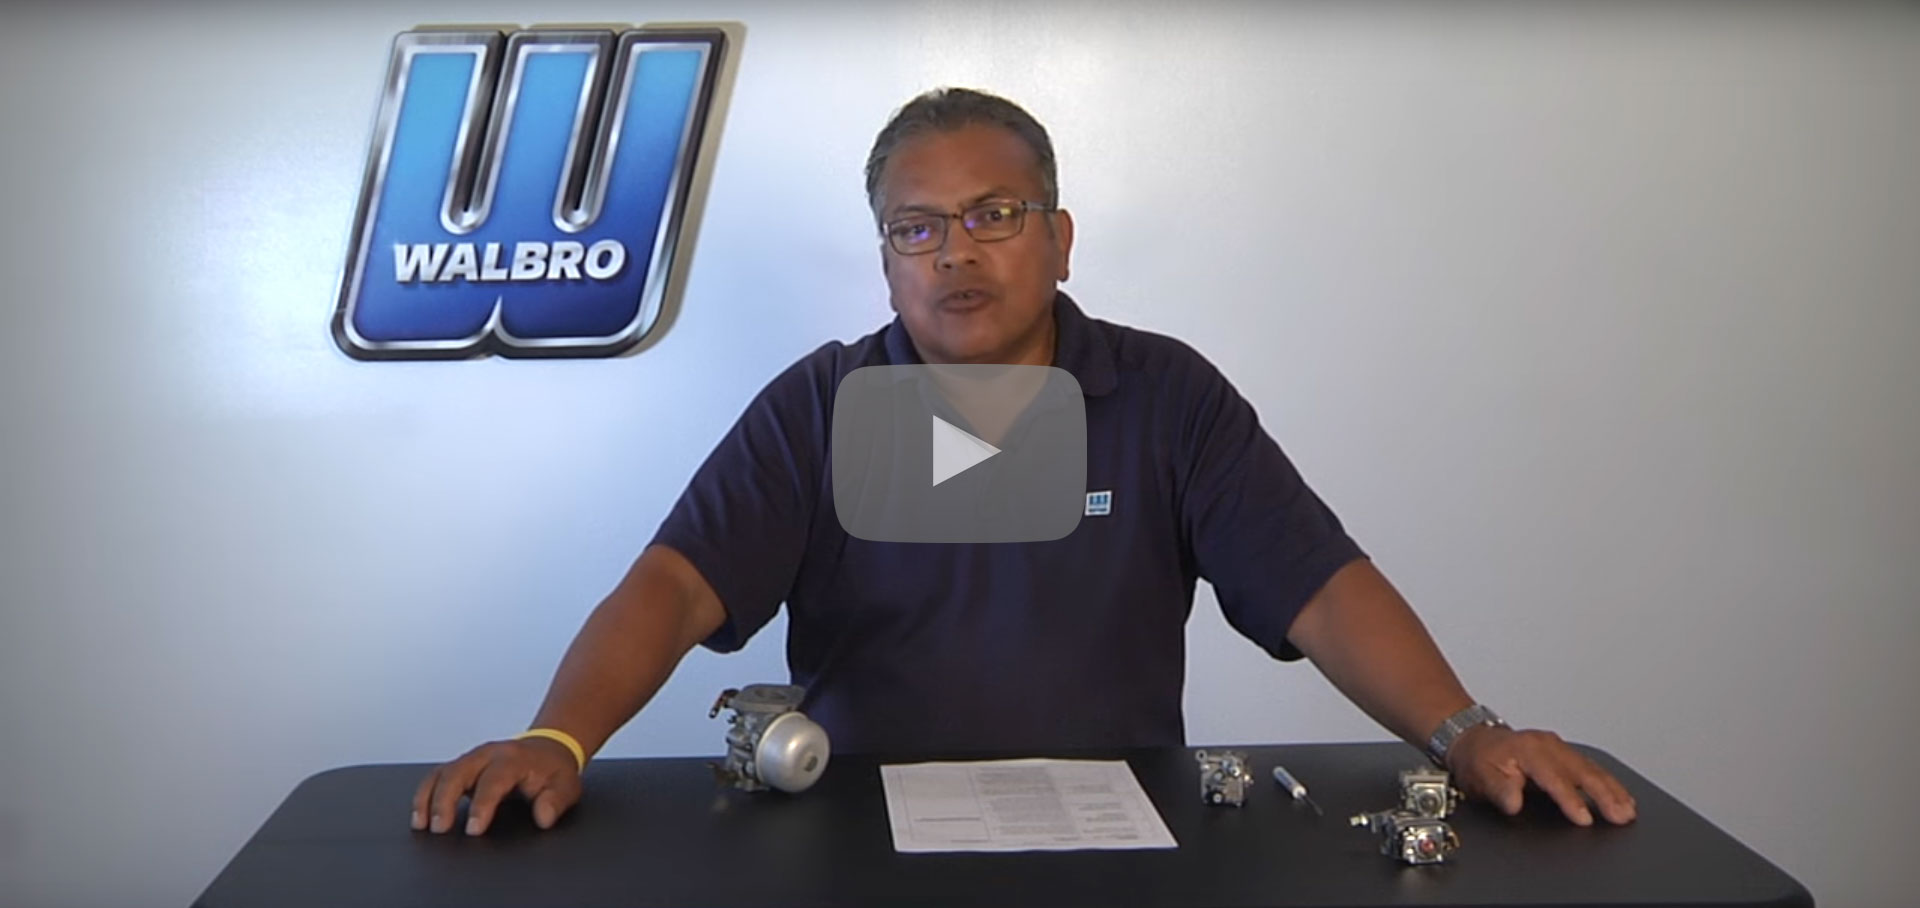 How to Find the Part Number on a Walbro Carburetor - Walbro Walbro Carburetor Schematic on